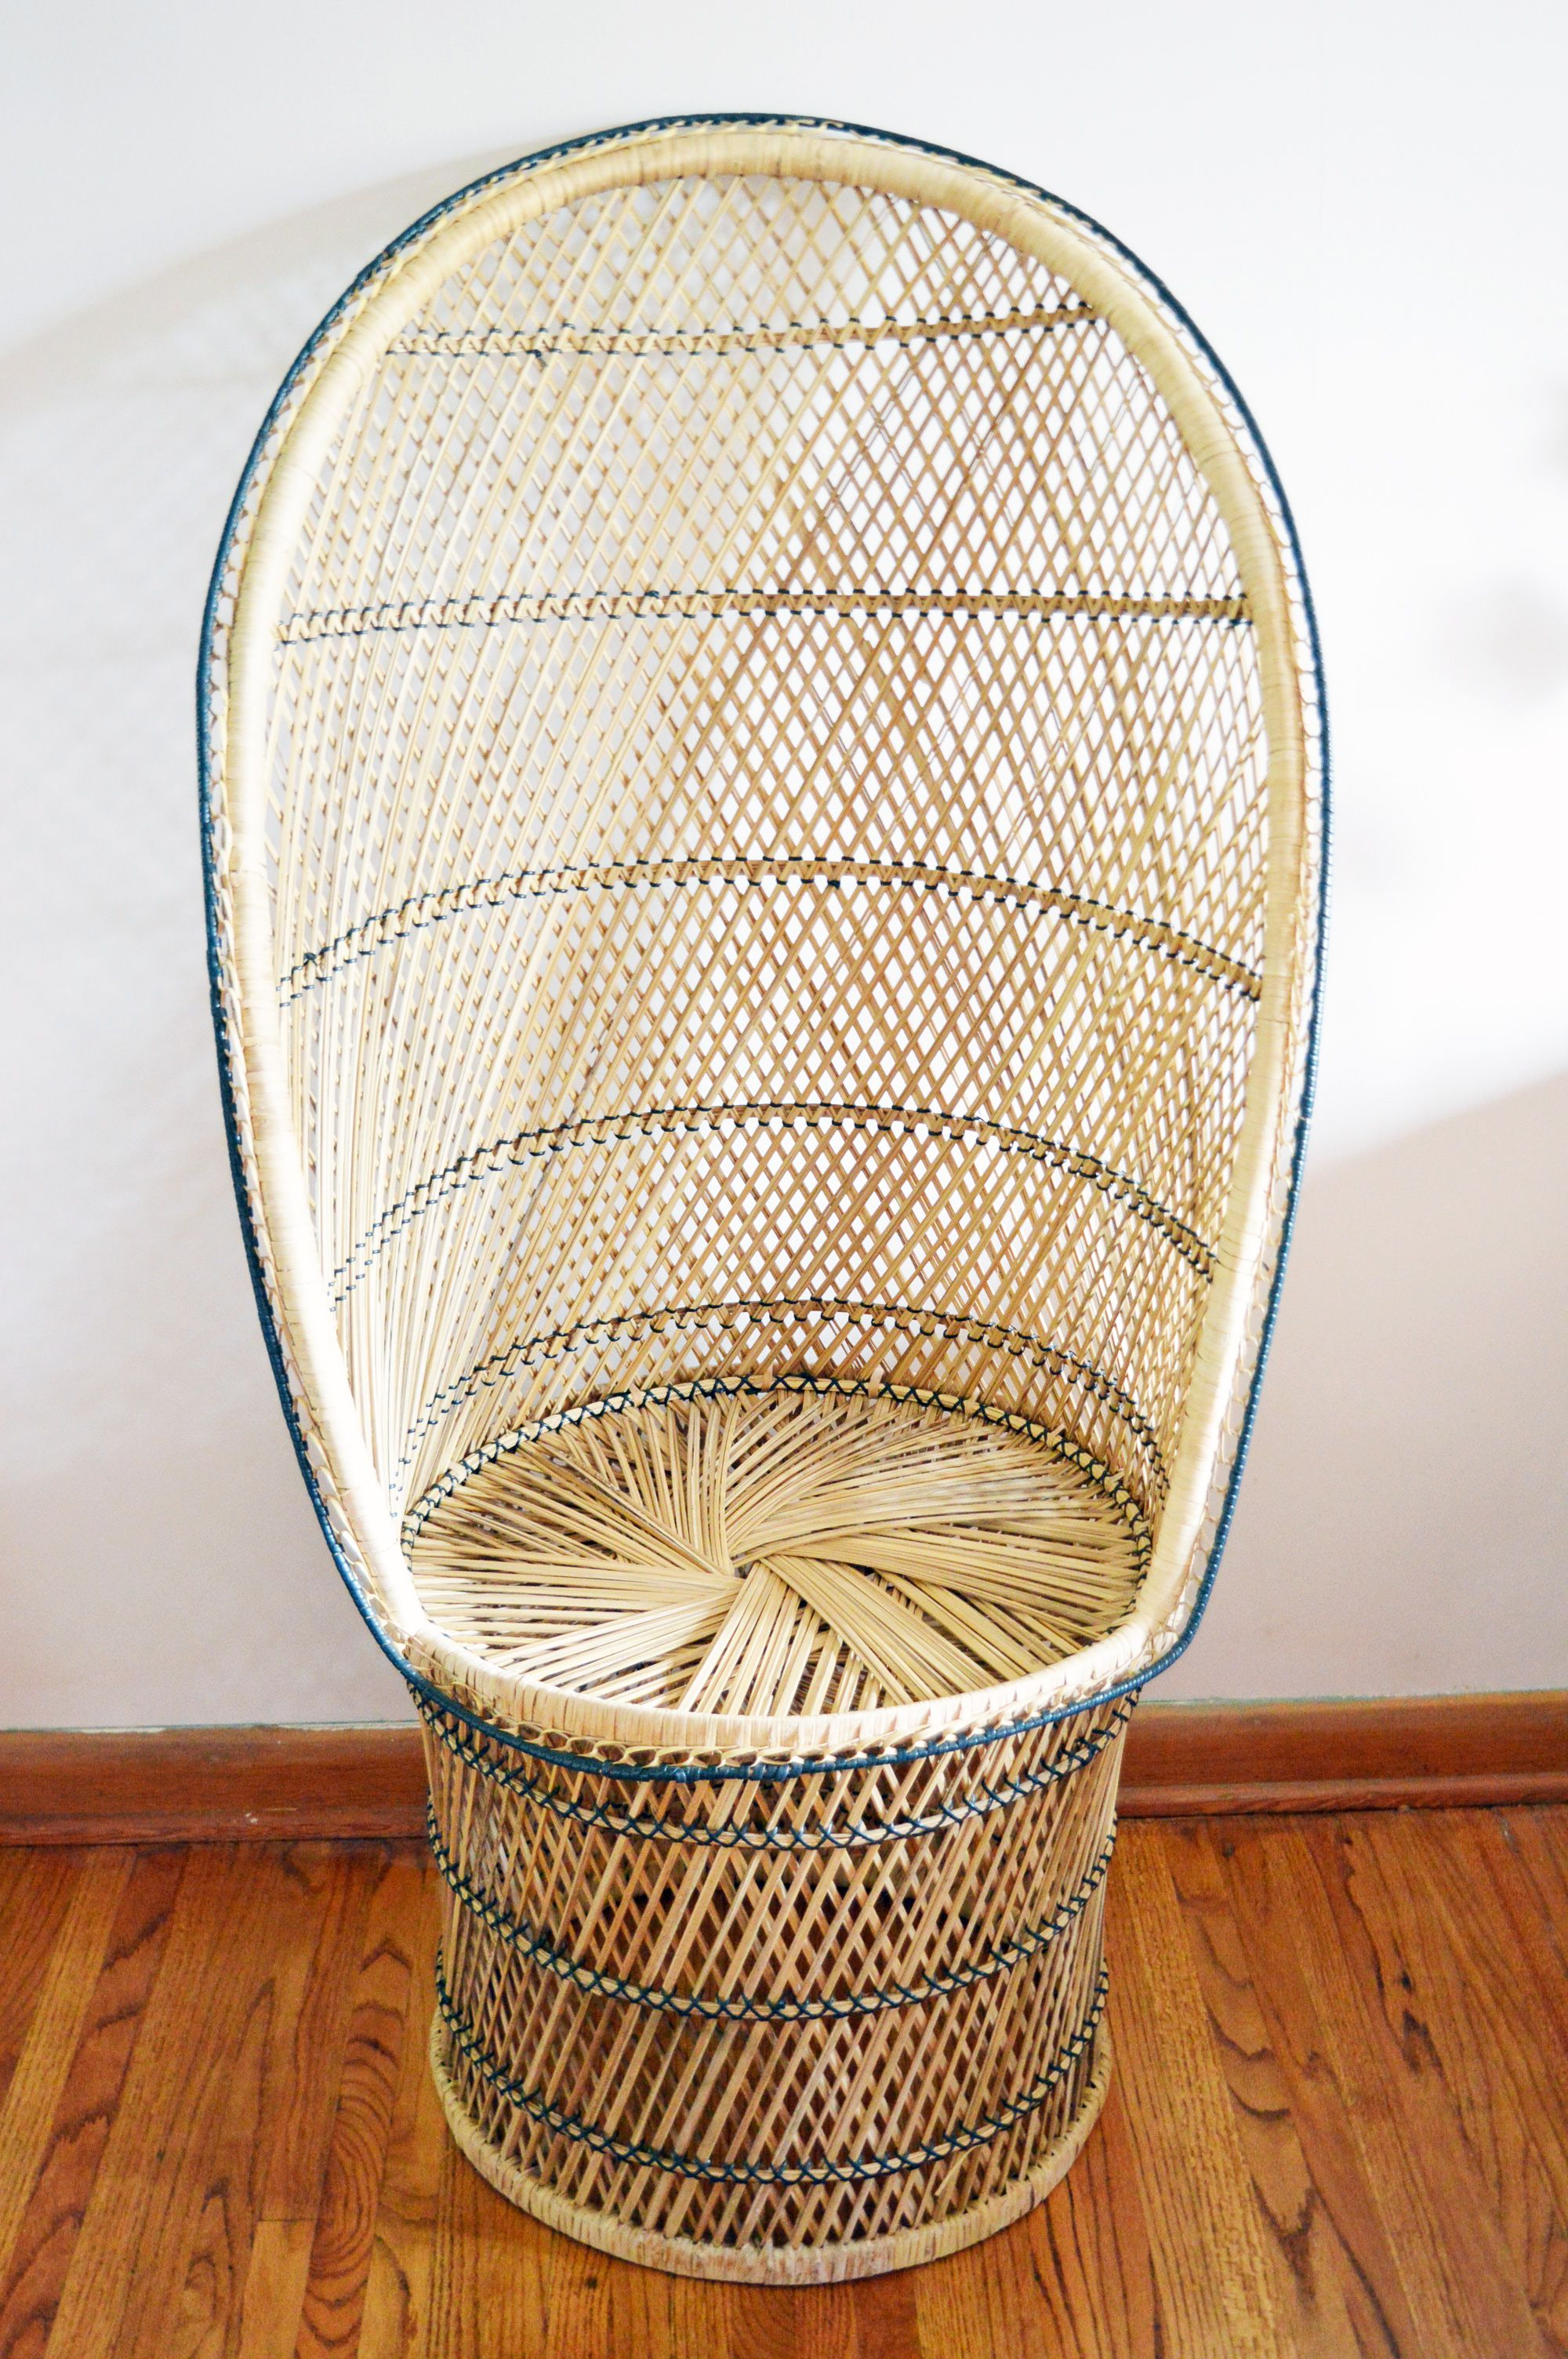 Vintage Rattan Egg Shaped Peacock Chair for Sale by